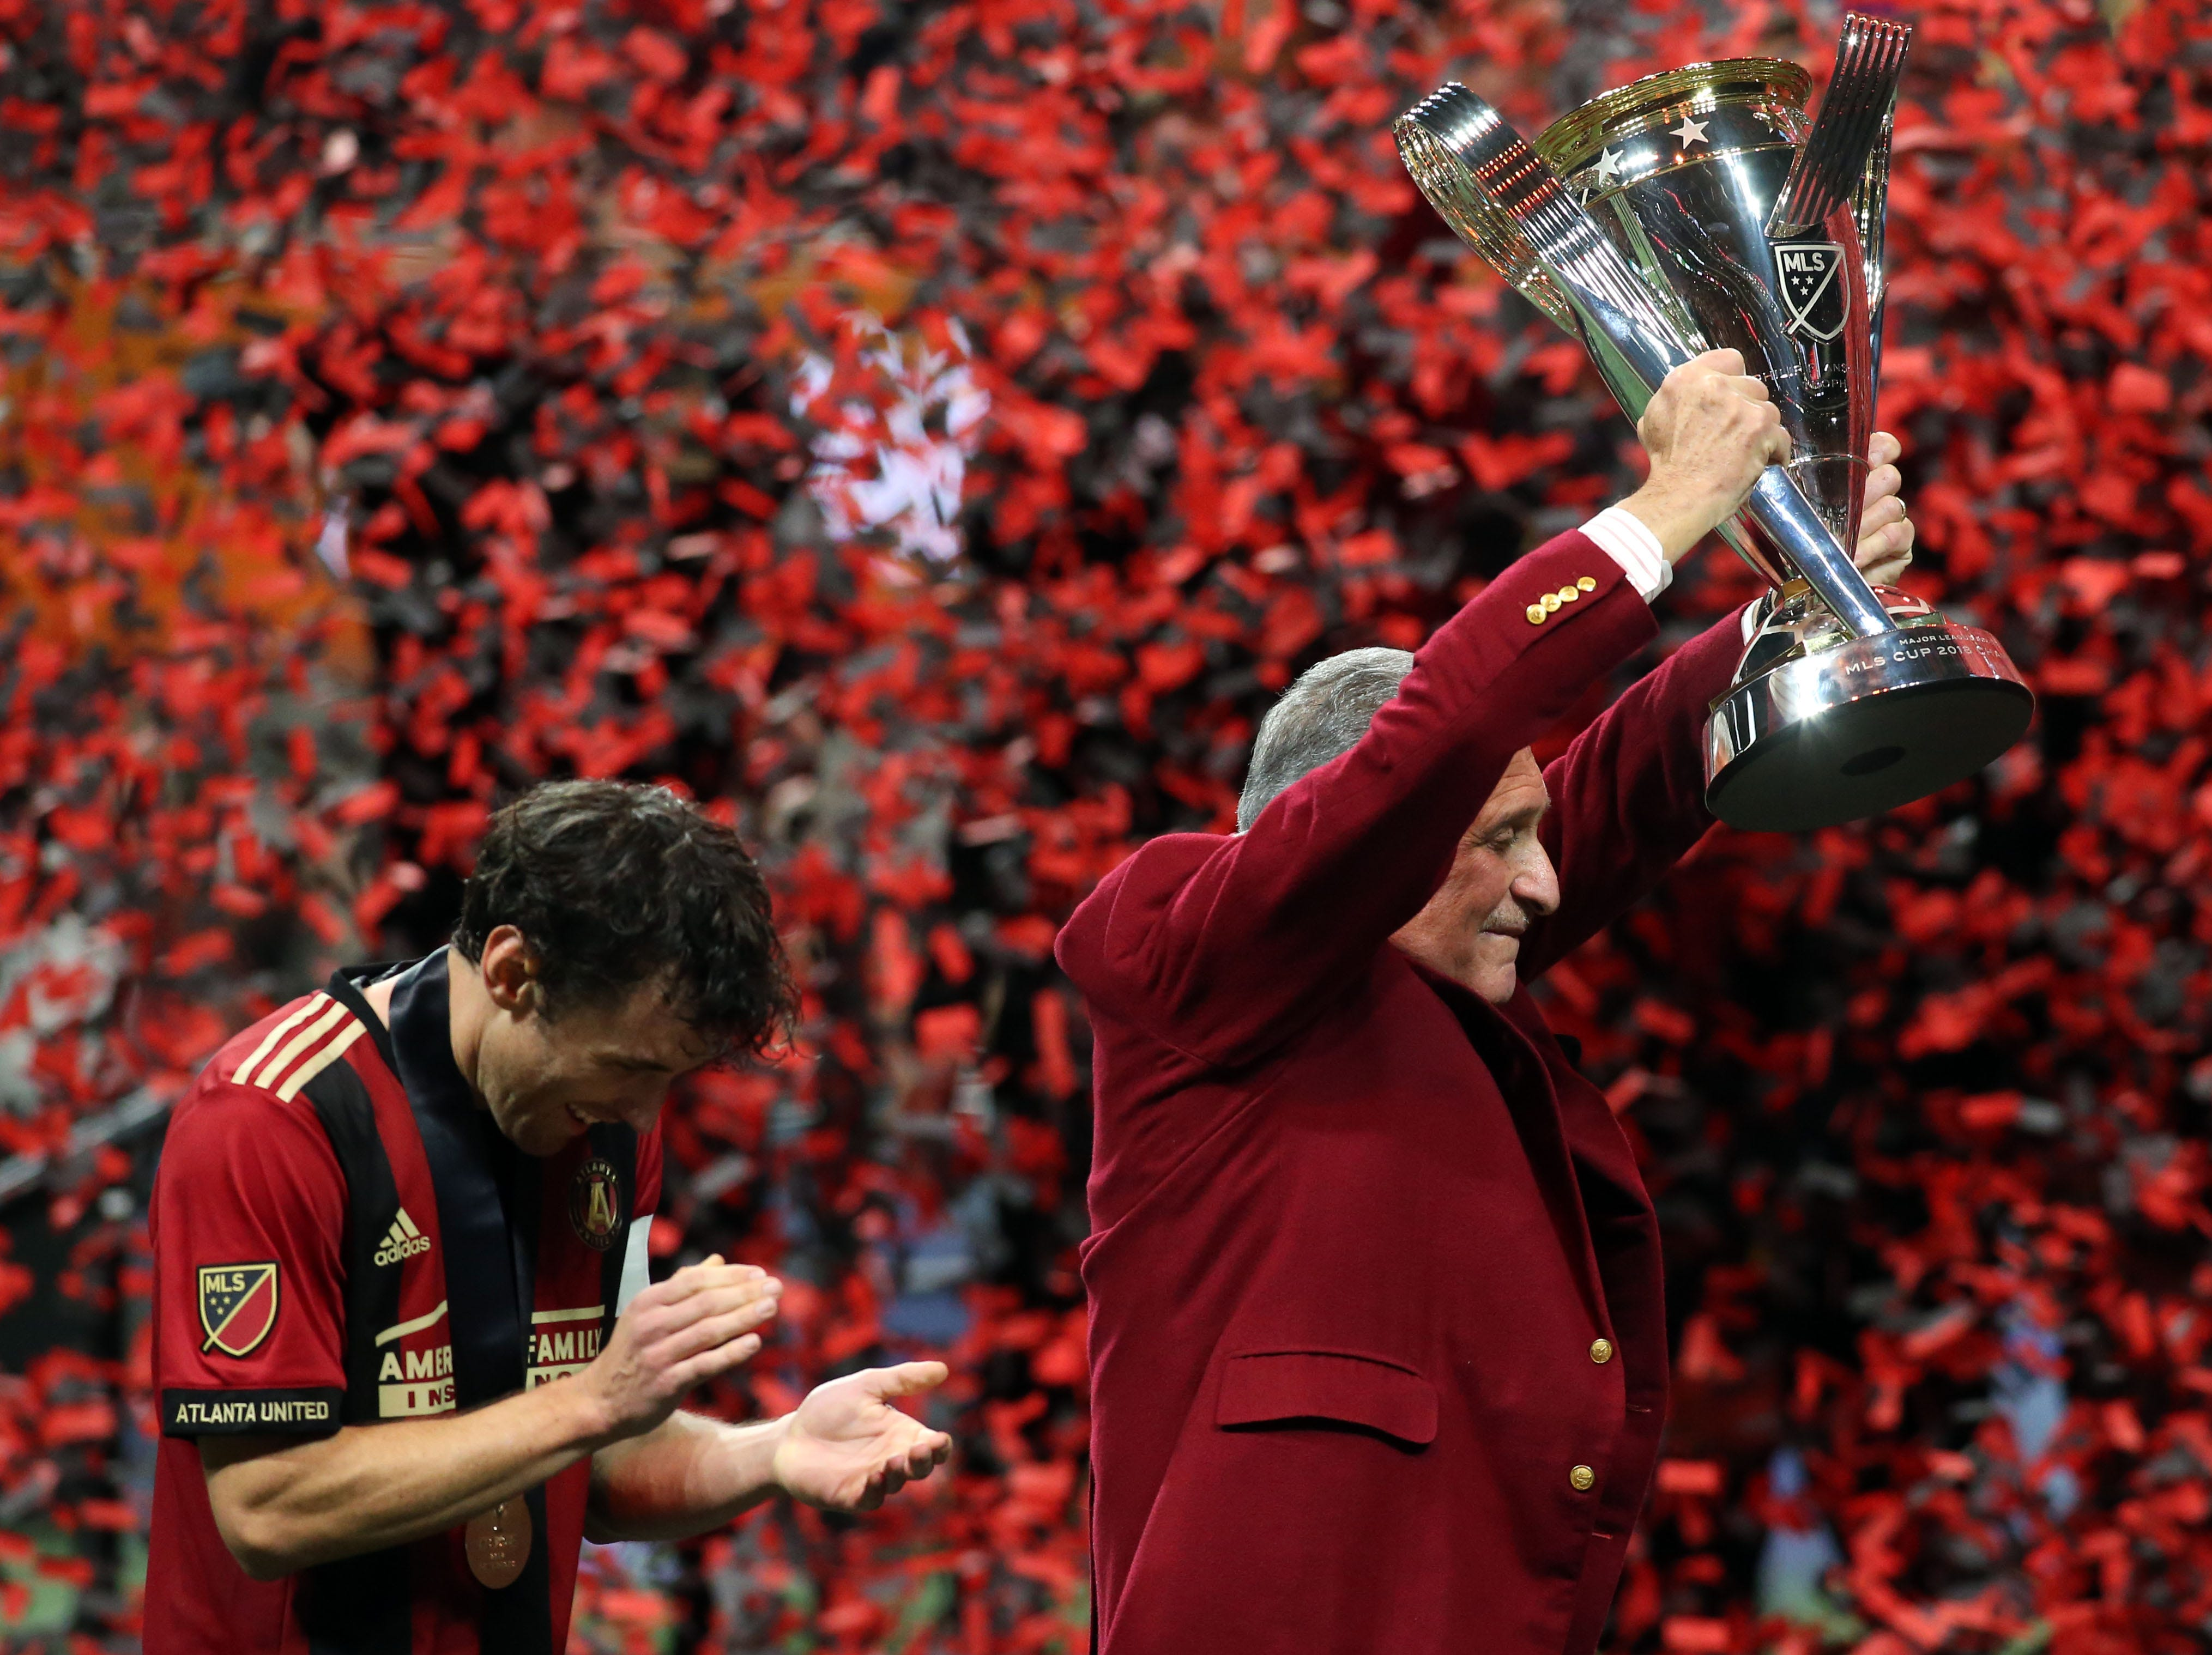 Atlanta United owner Arthur Blank raises MLS Cup next to defender Michael Parkhurst after the team won its first Major League Soccer championship.